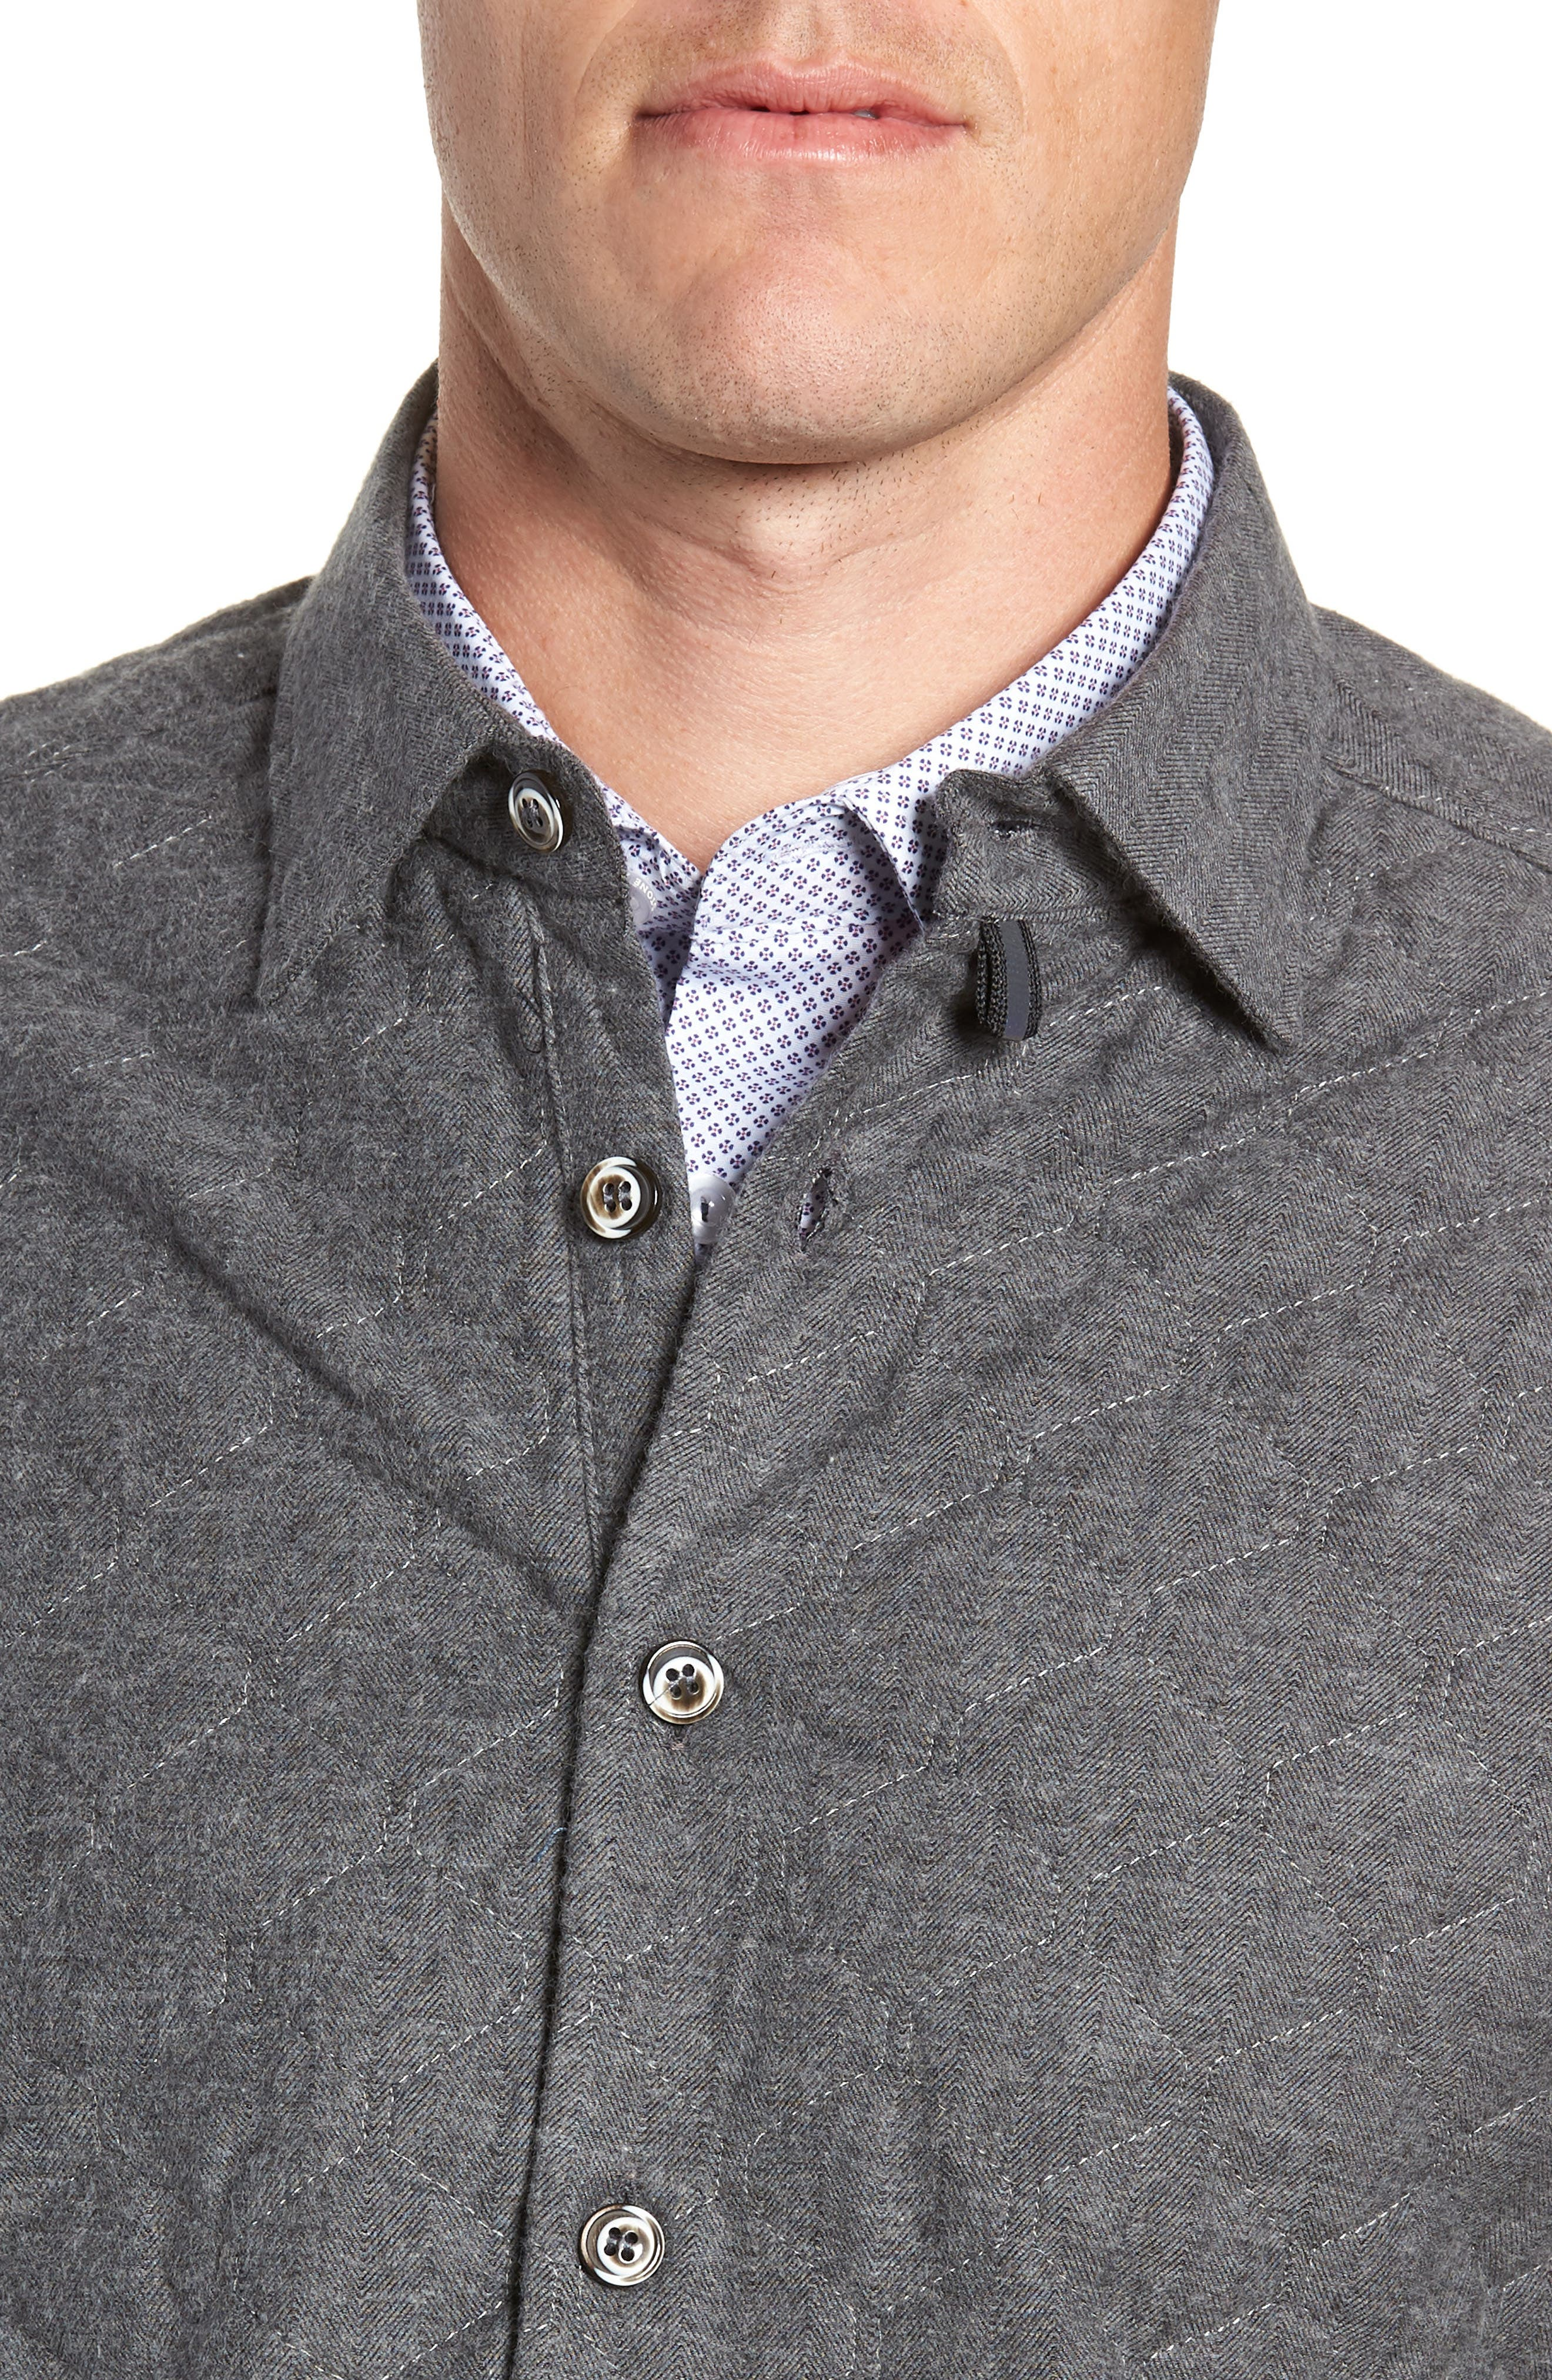 Trim Fit Quilted Shirt Jacket,                             Alternate thumbnail 2, color,                             CHARCOAL